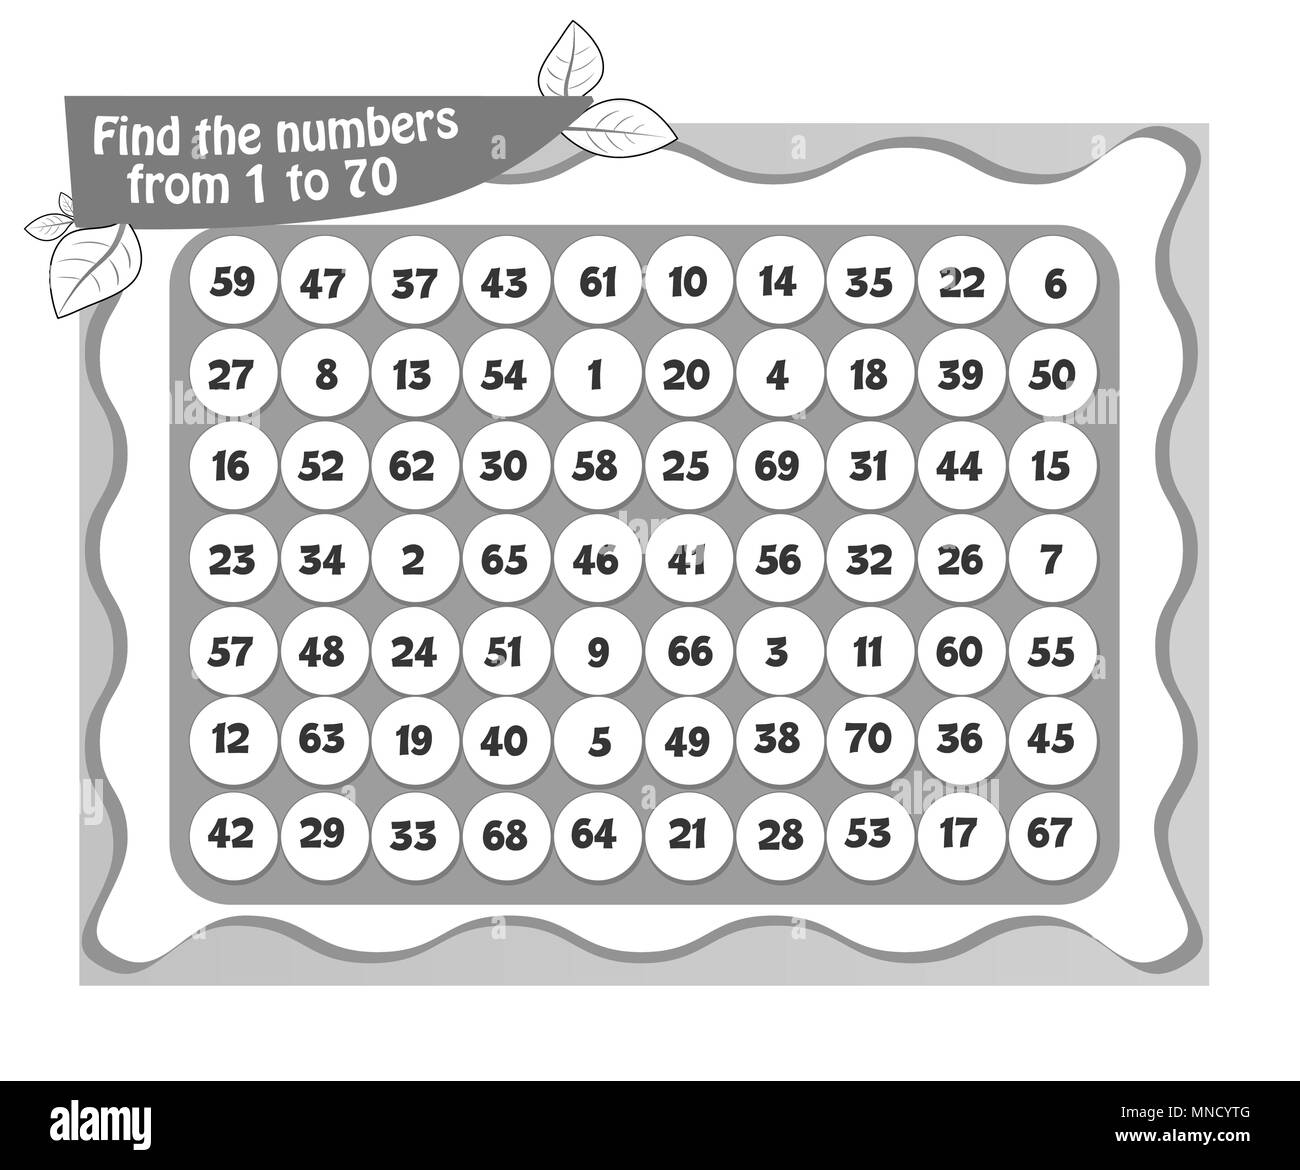 visual game, coloring book for children and adults.Task game find the  numbers from 1 to 70